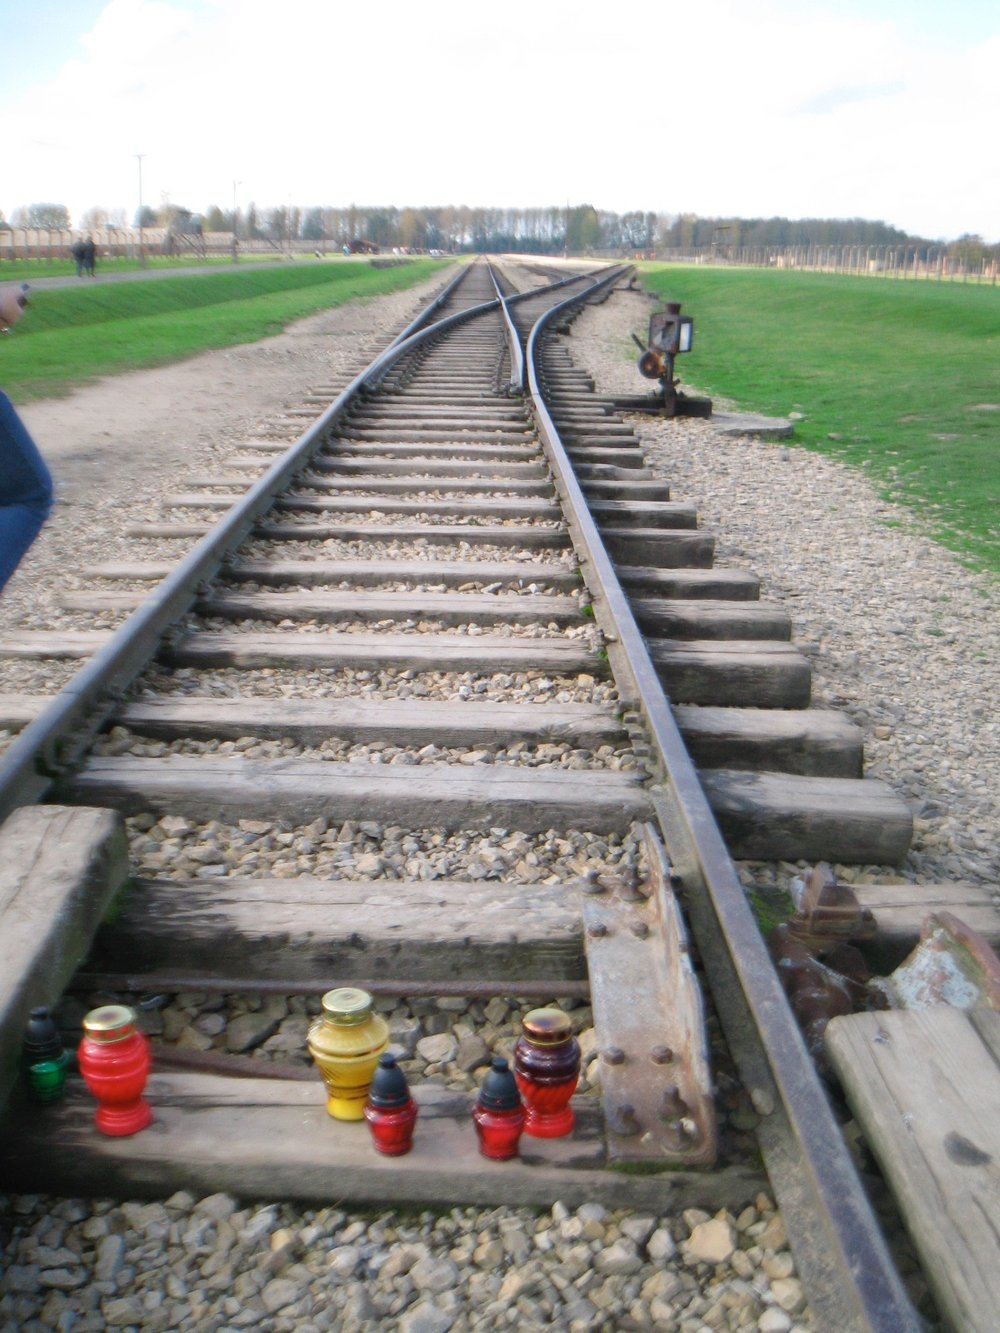 These are the infamous train tracks at Auschwitz.